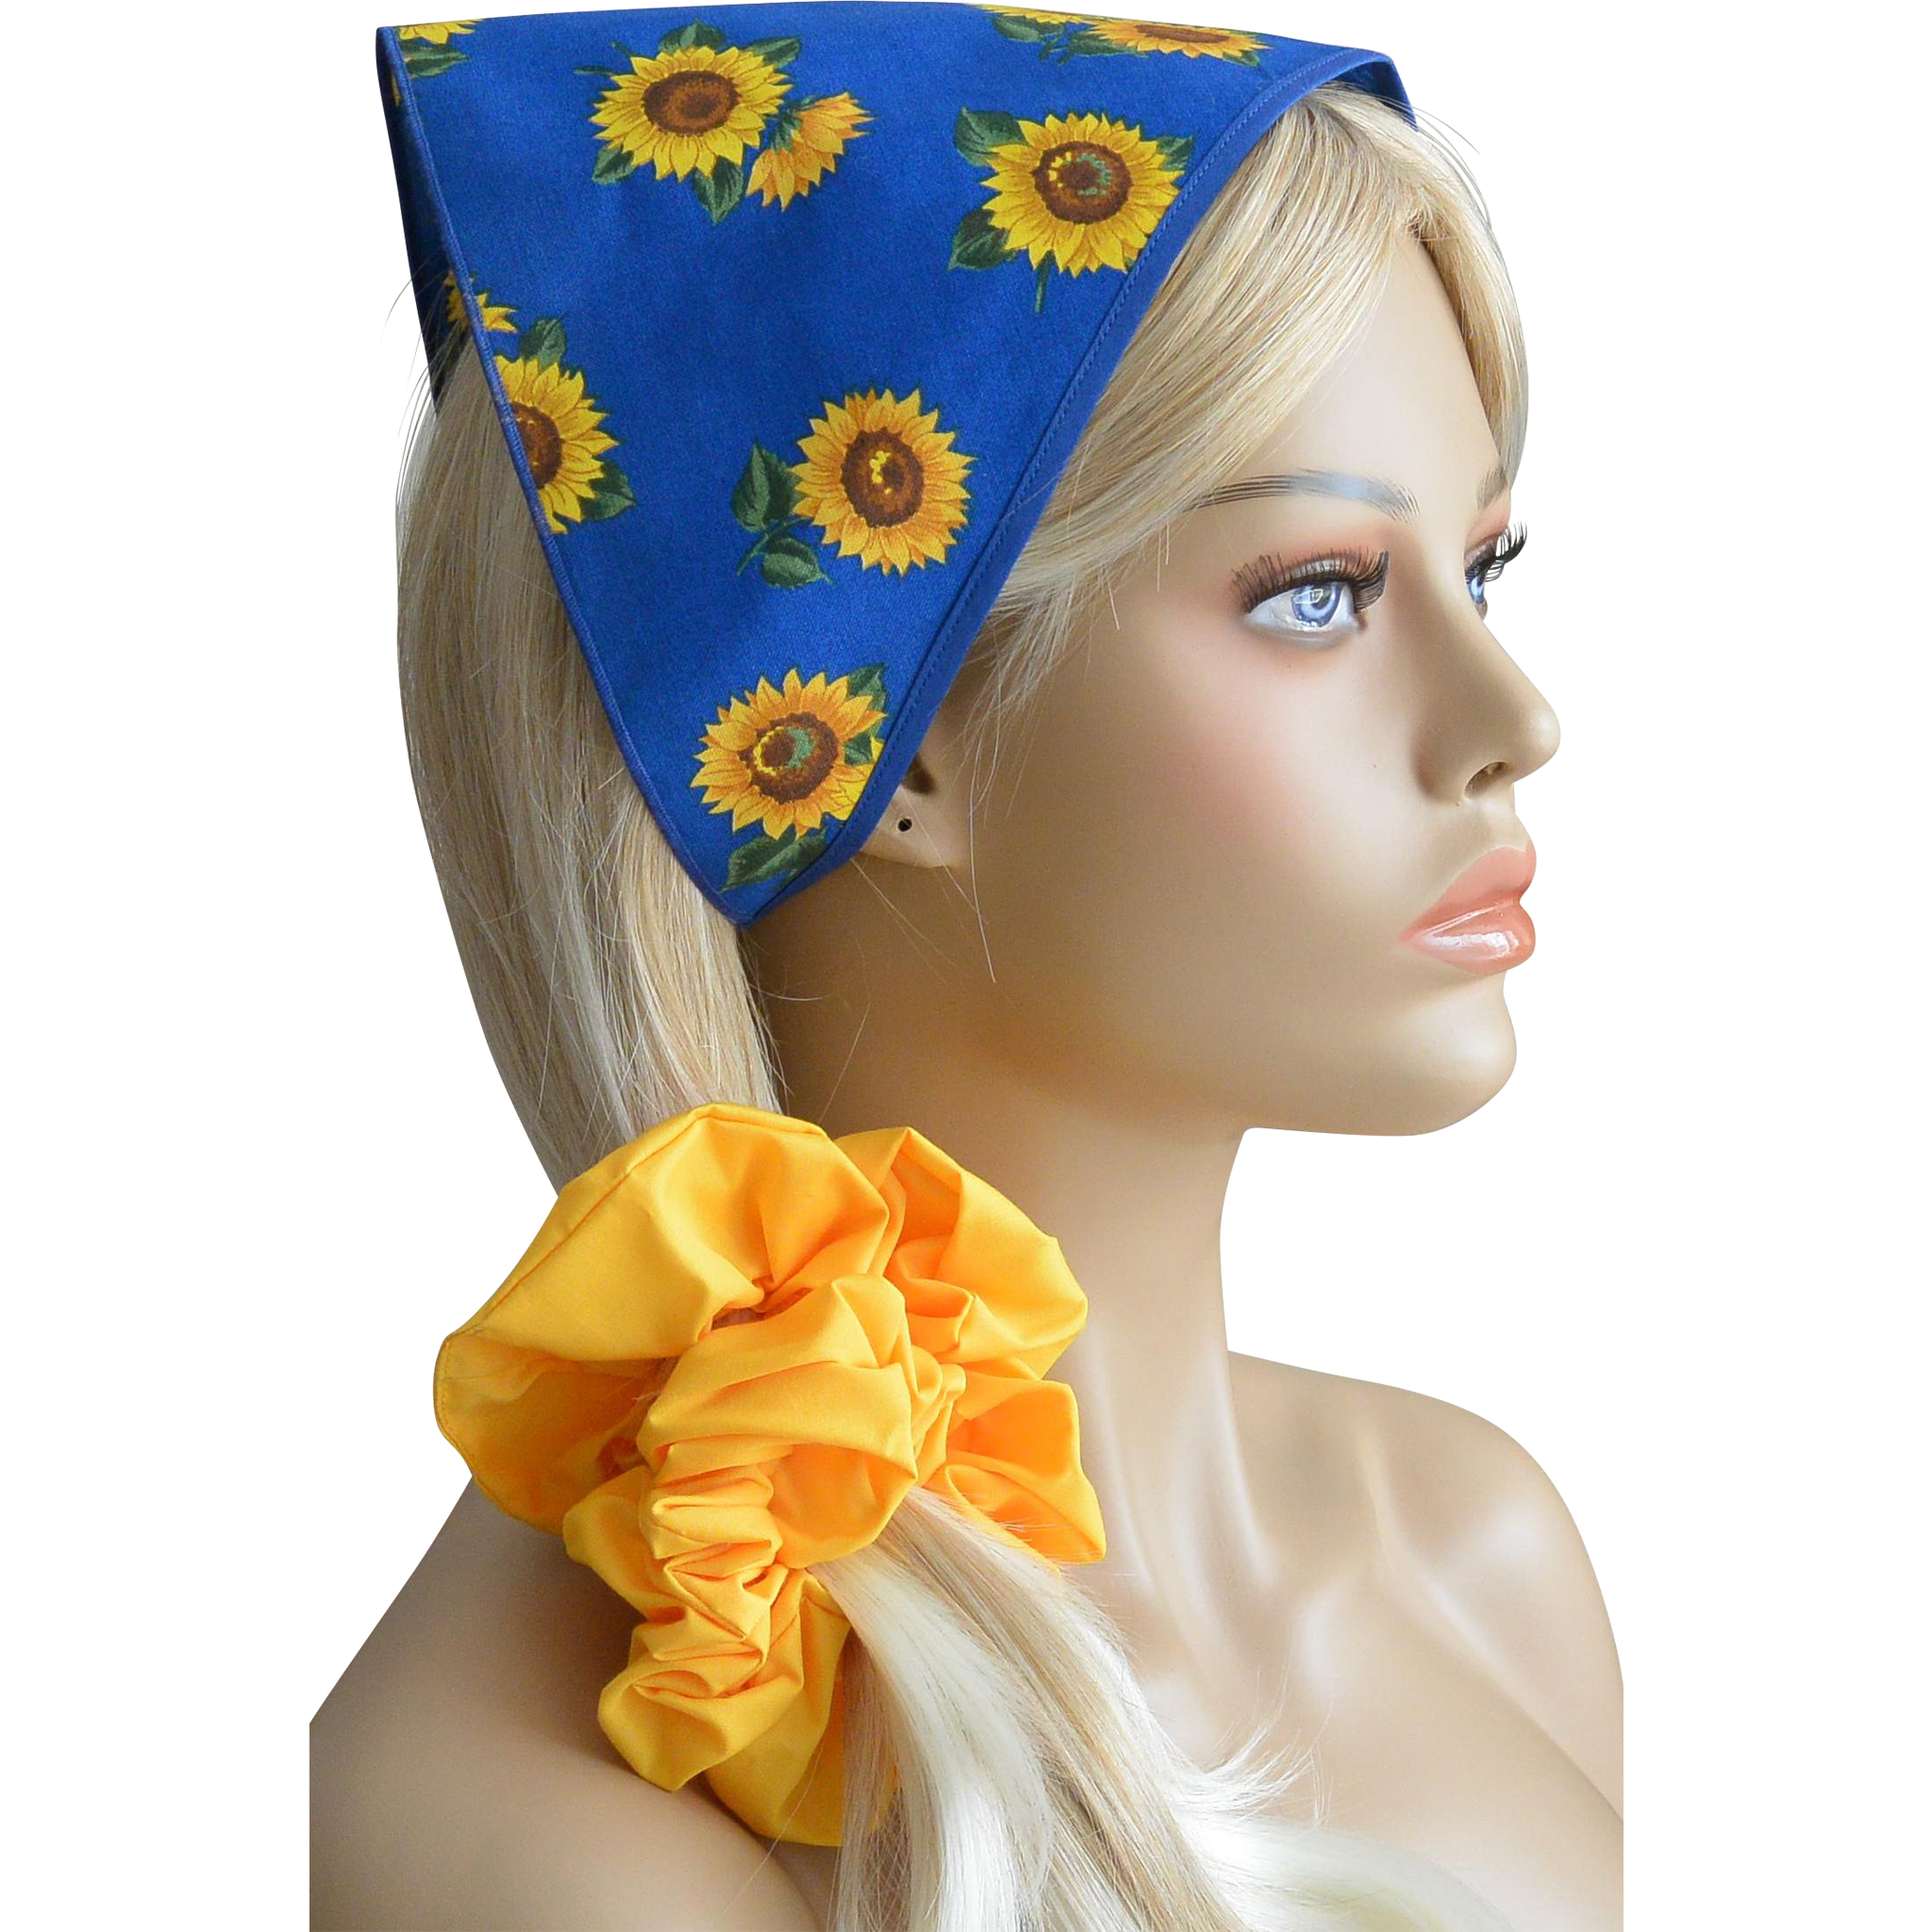 Babushka And Hair Scrunchie Set-Sunflowers on Royal Blue New Old Stock